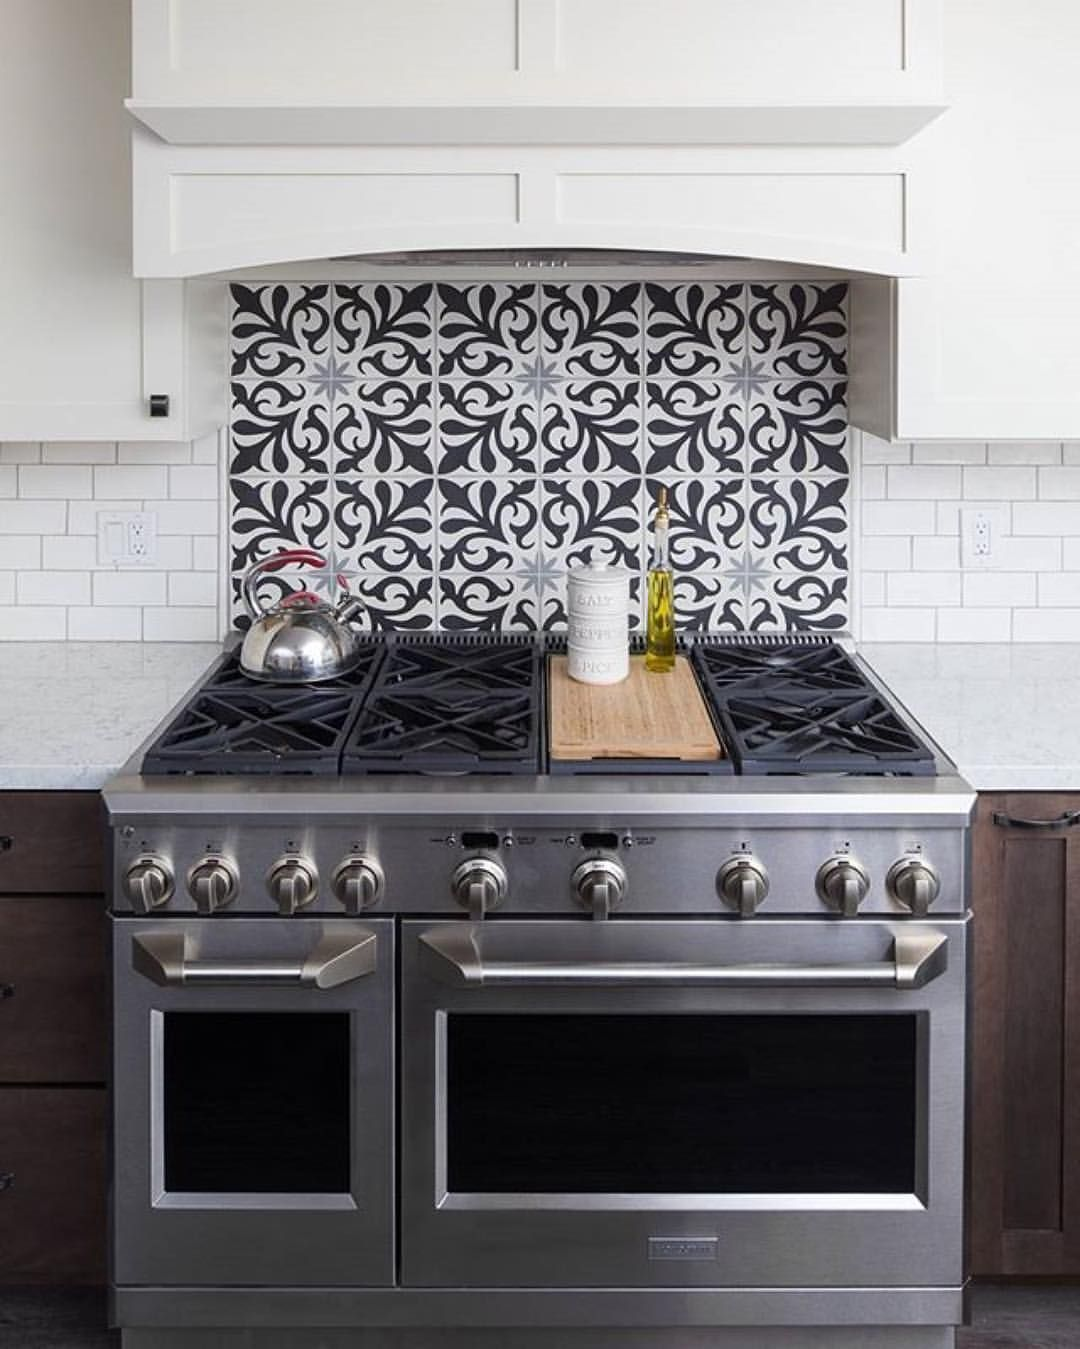 Find Ideas And Inspiration For Decorative Kitchen Tiles To